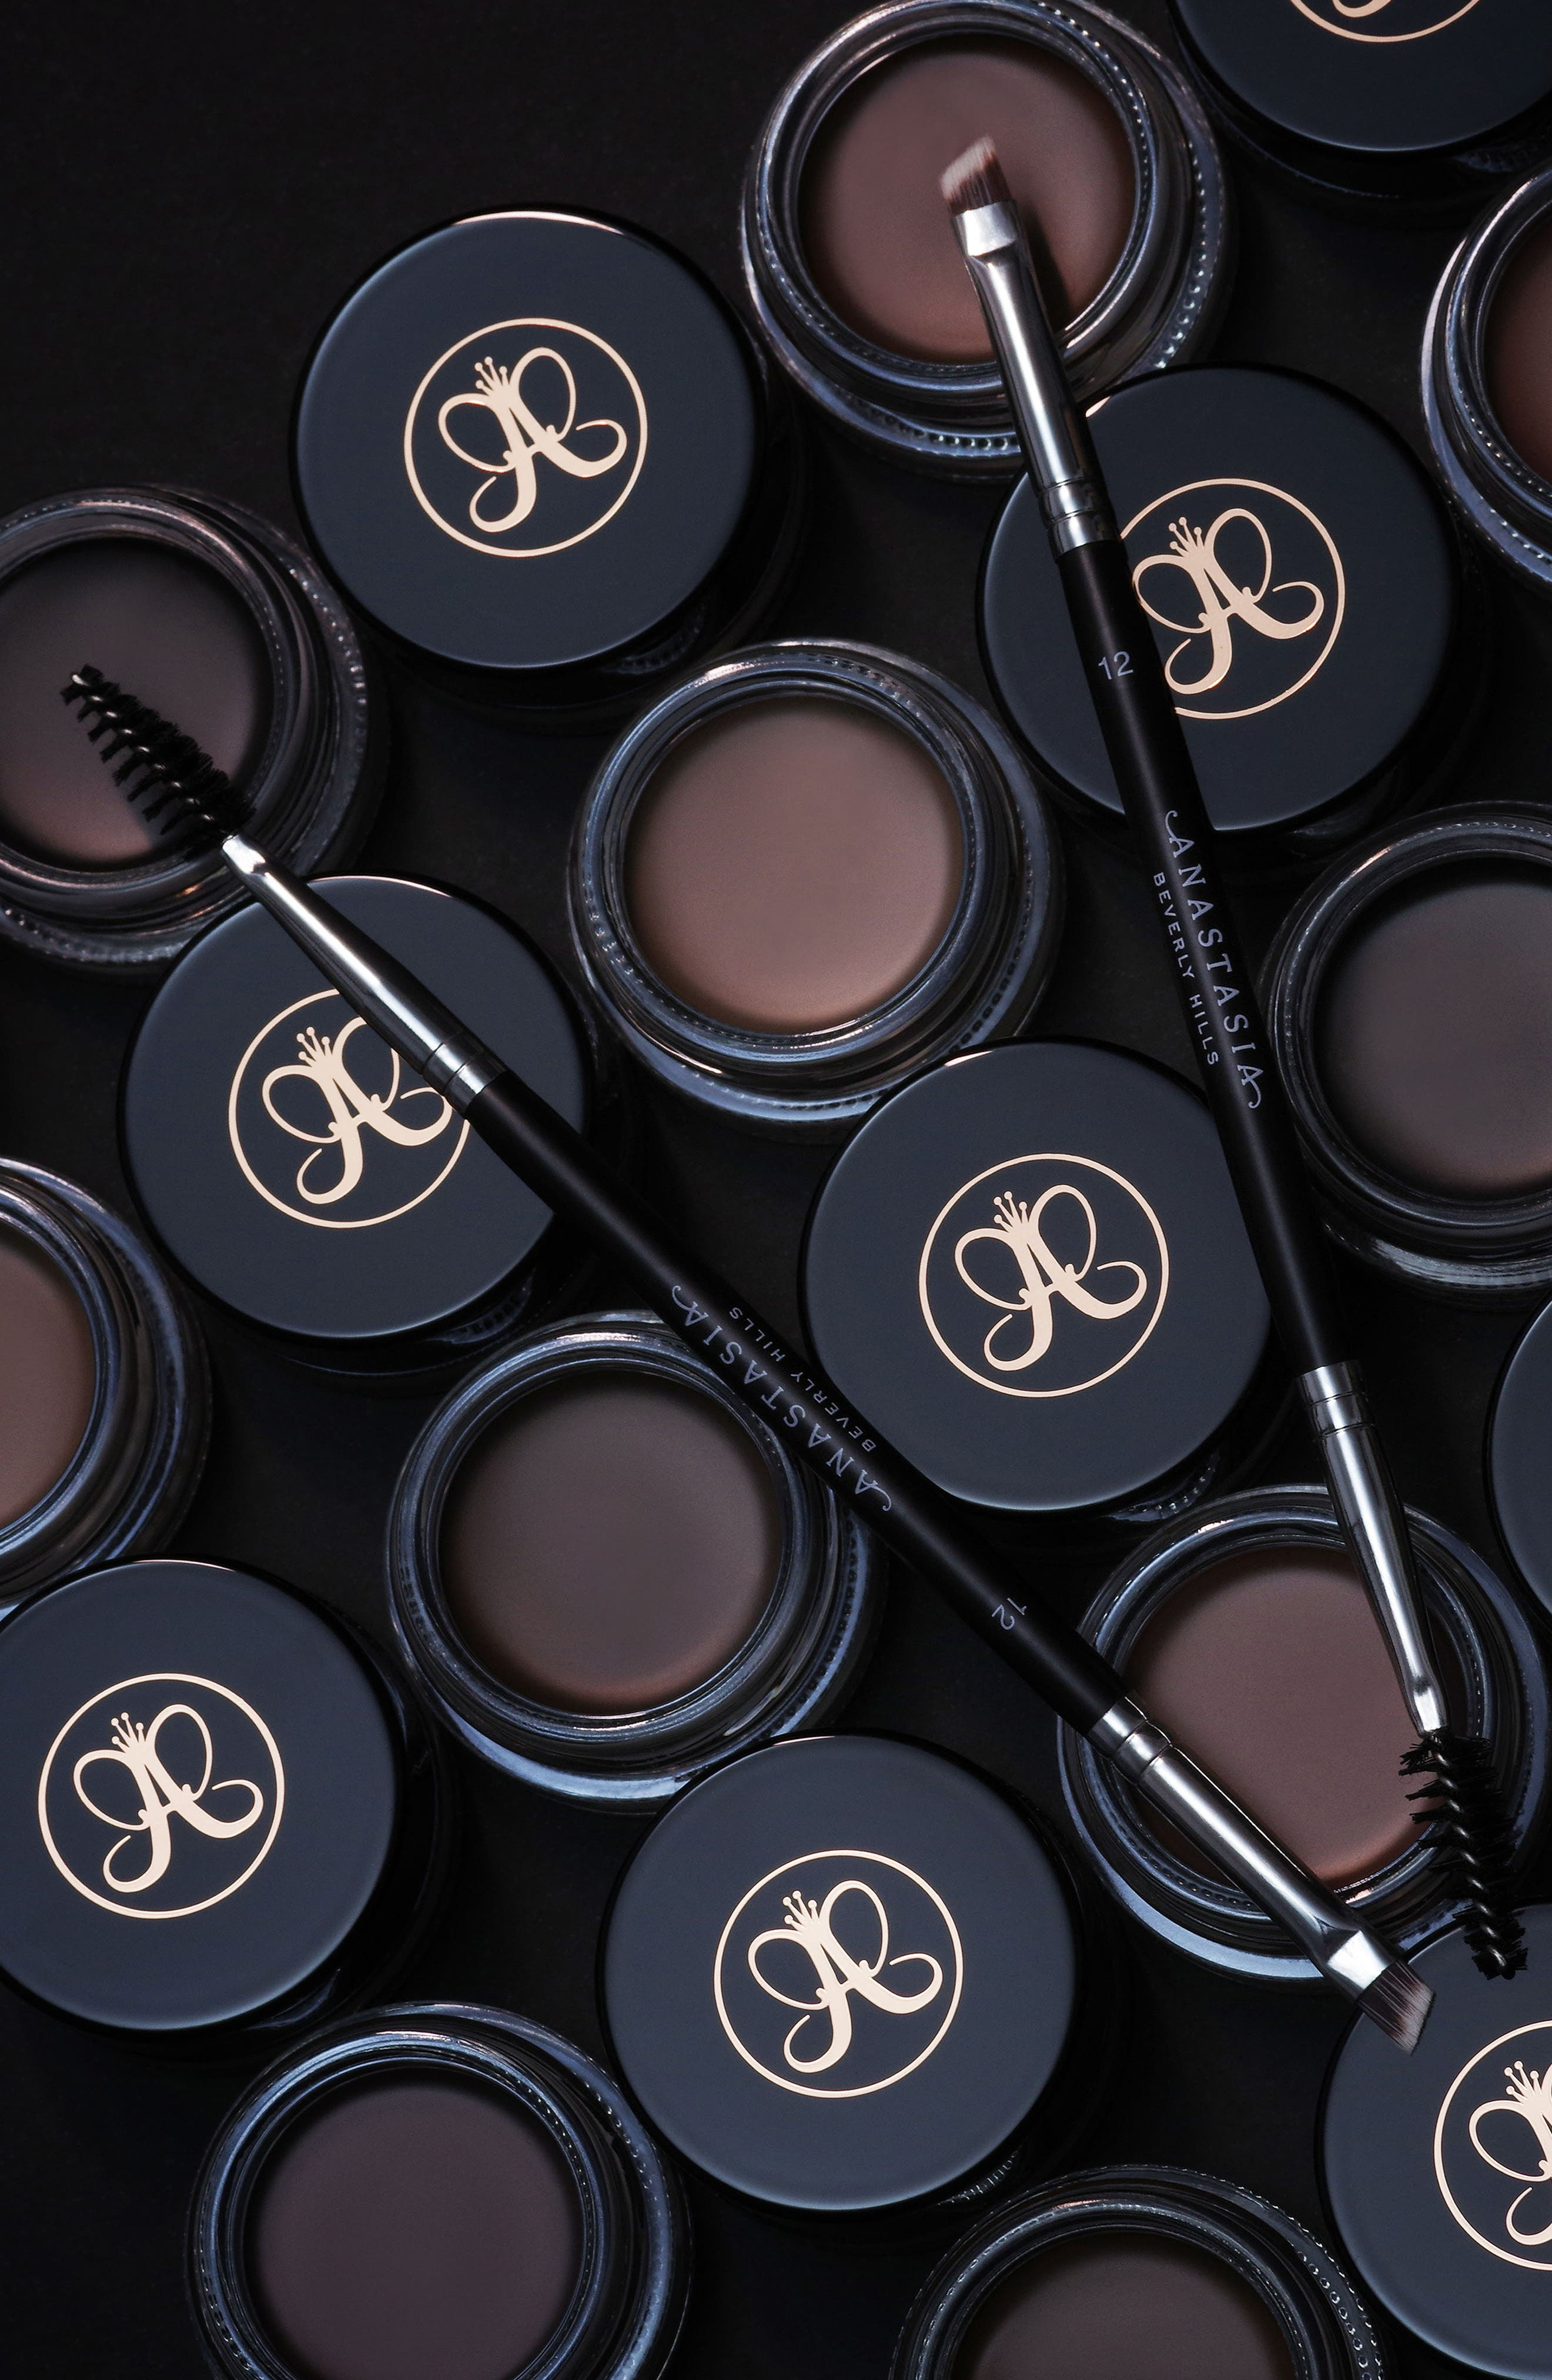 Dipbrow Pomade<sup>®</sup> Waterproof Brow Color,                             Alternate thumbnail 5, color,